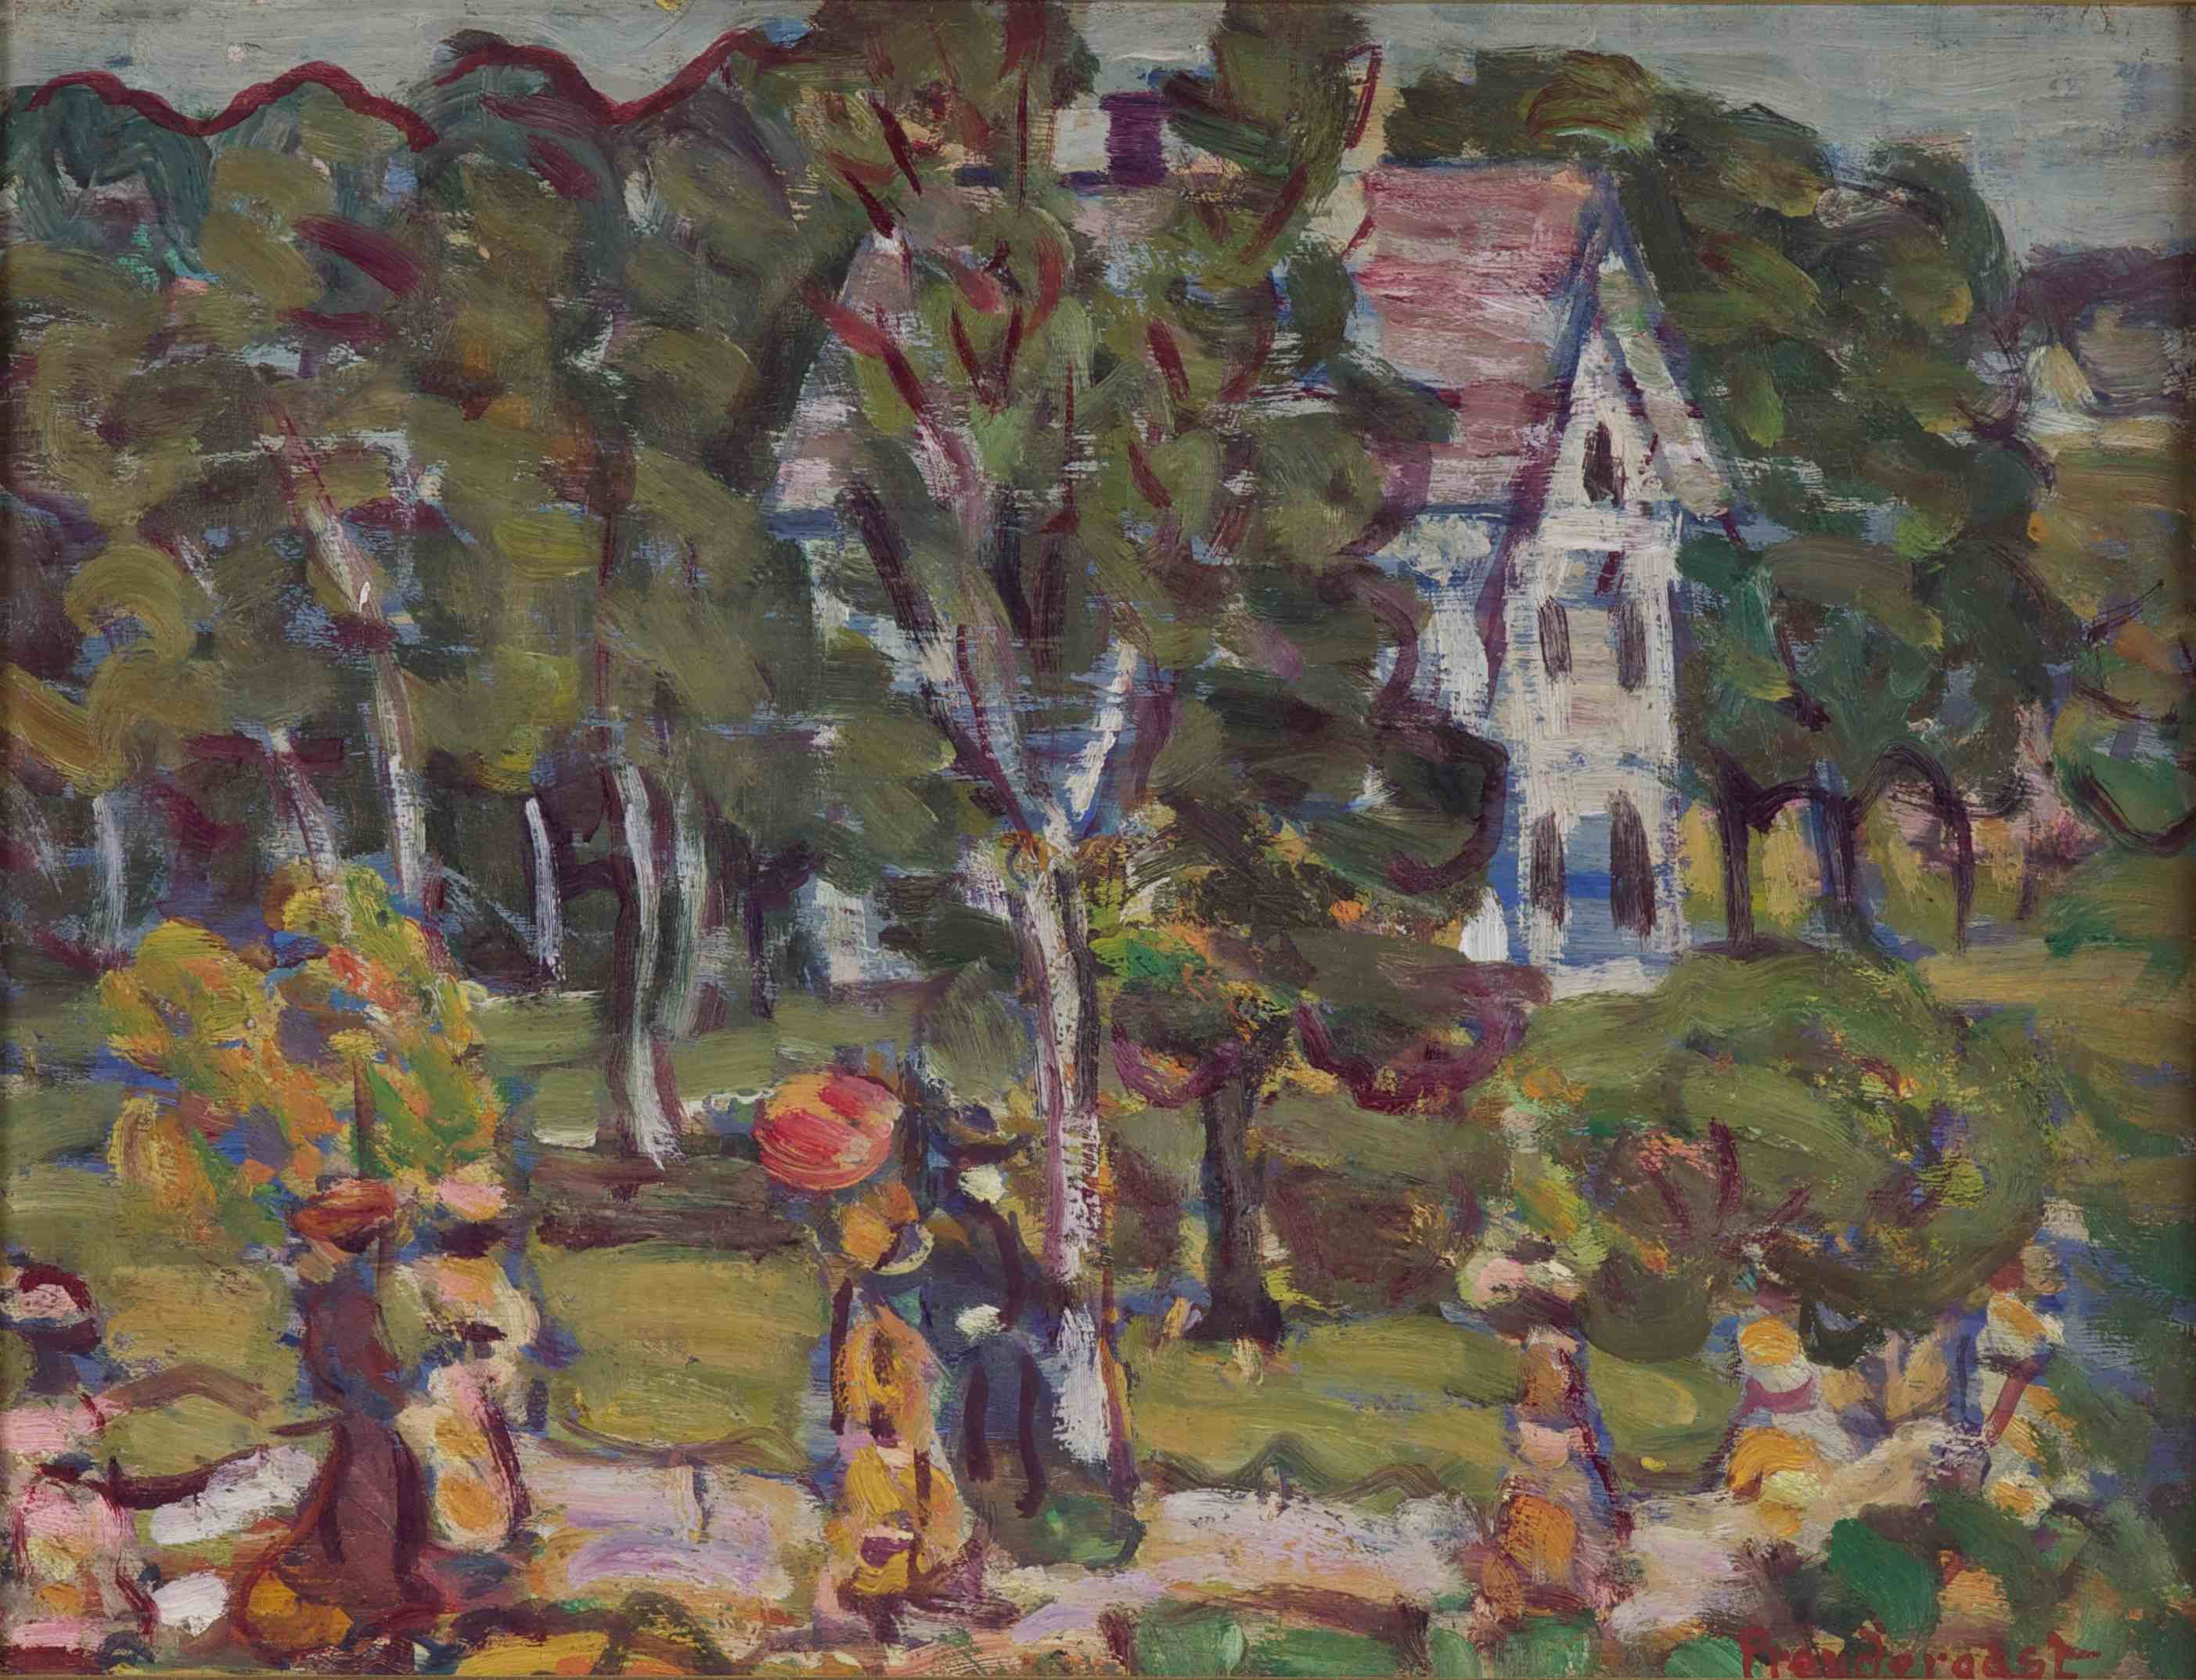 Maurice Brazil Prendergast (American, 1859–1924), Sunday Afternoon, c. 1910–1913. Oil on panel. Gift of Mrs. Eugenie Prendergast.